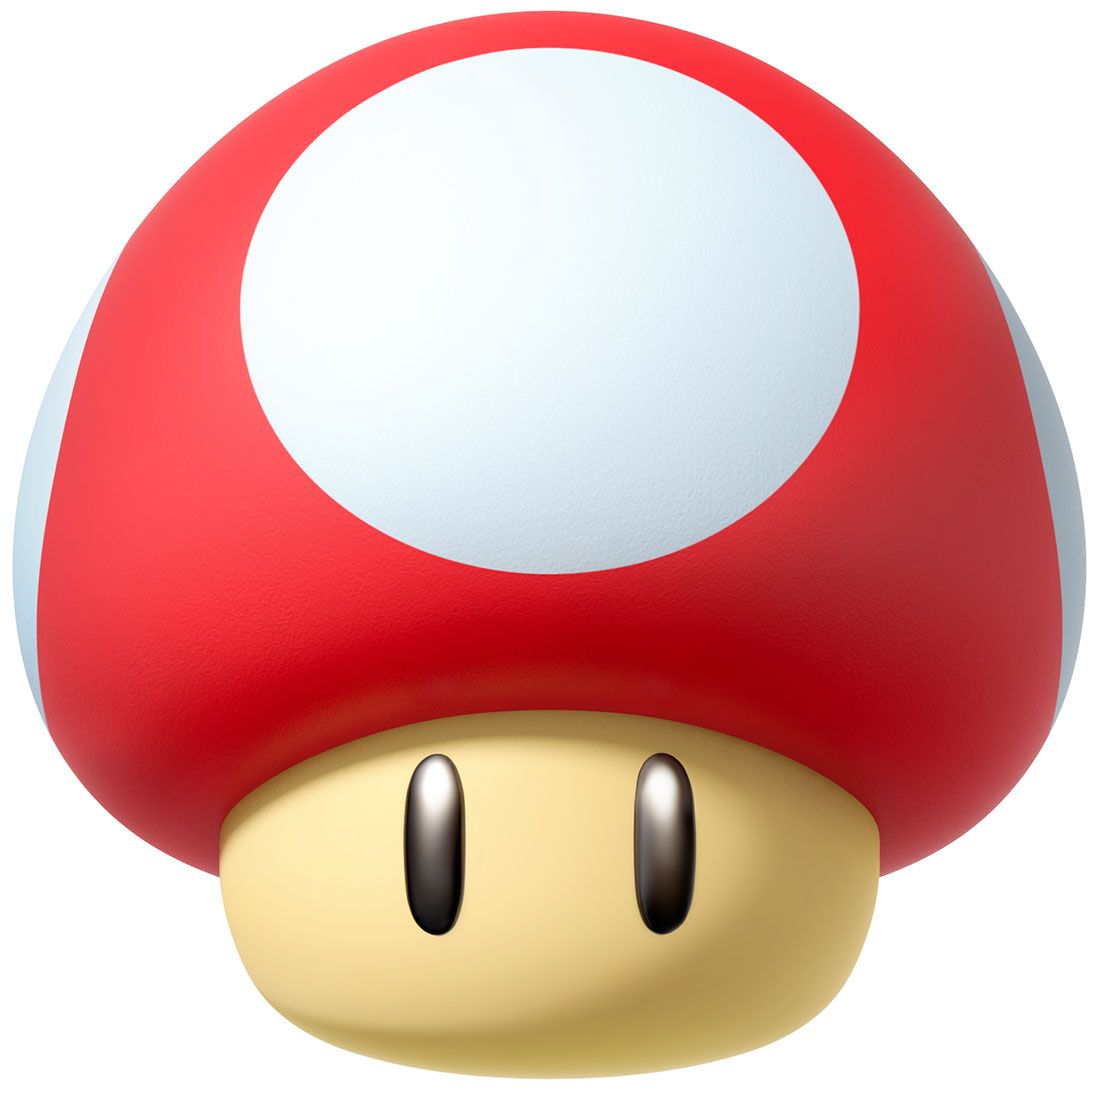 Mushroom | Mario Kart 8 | Art References & Inspirations ...